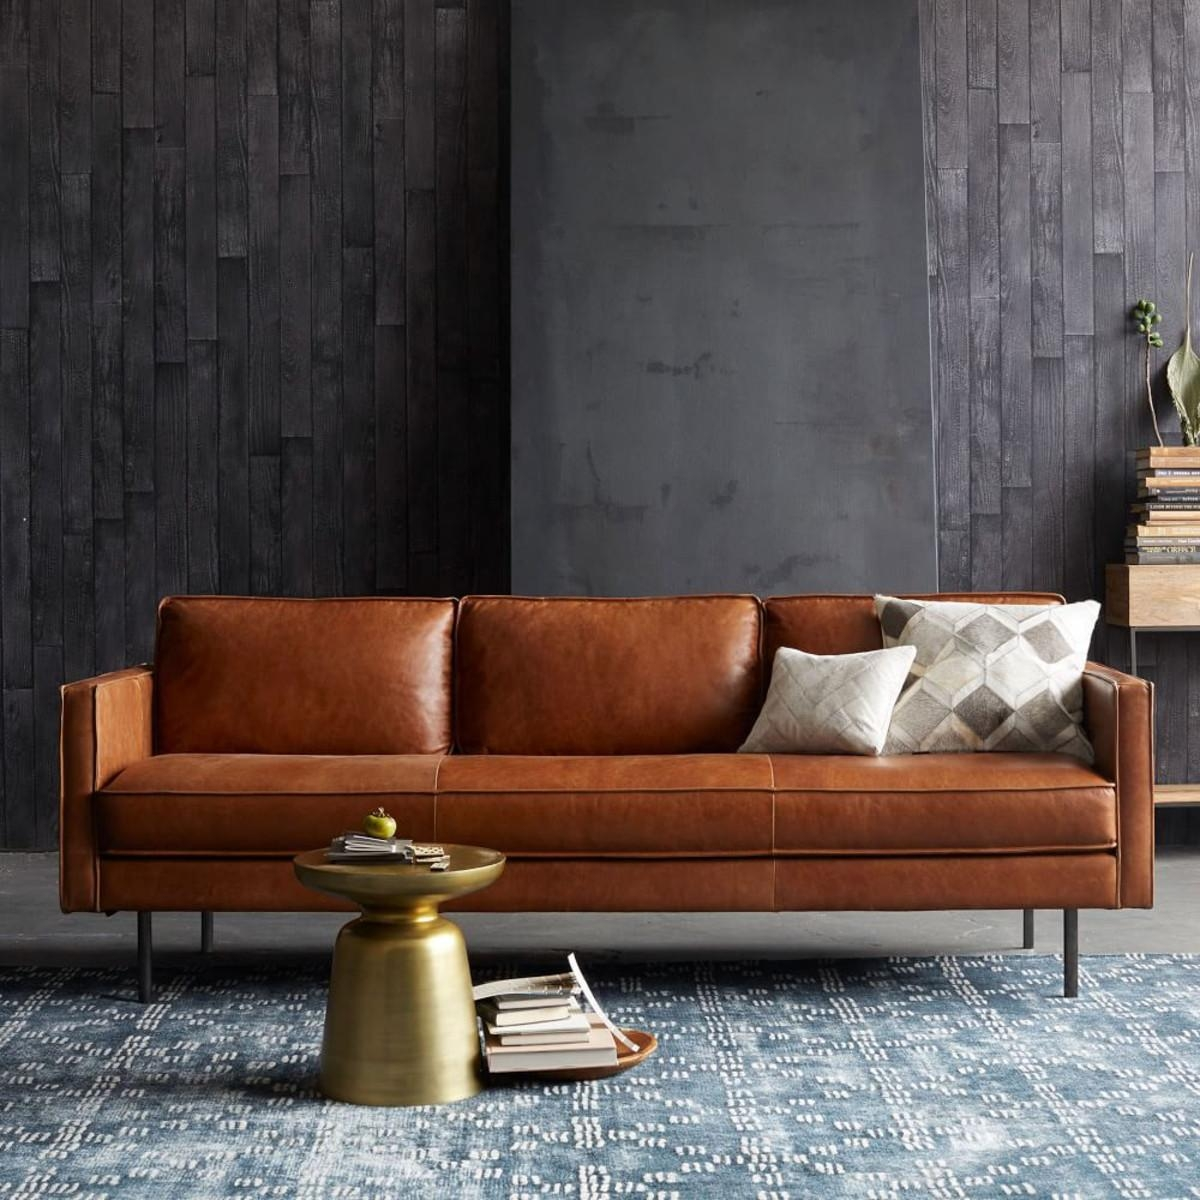 6 Of The Besttan Leather Sofas On The High Street | Design Seeker for Aniline Leather Sofas